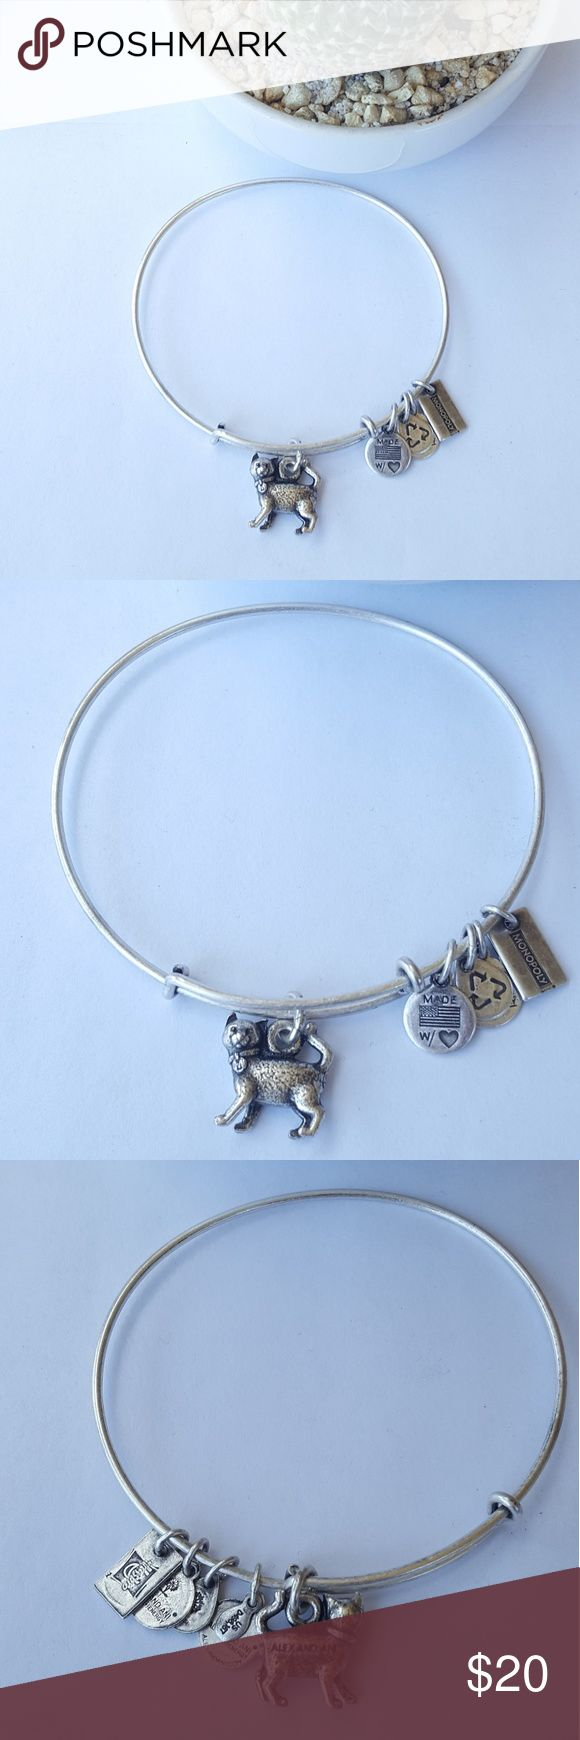 "Alex & Ani ""Monopoly Cat"" Bangle Silver Tone Alex & Ani ""Monopoly Cat"" Expandable Bangle Condition: Used. Some scuffs and the slightest discoloration Please view pics Alex & Ani Jewelry Bracelets"